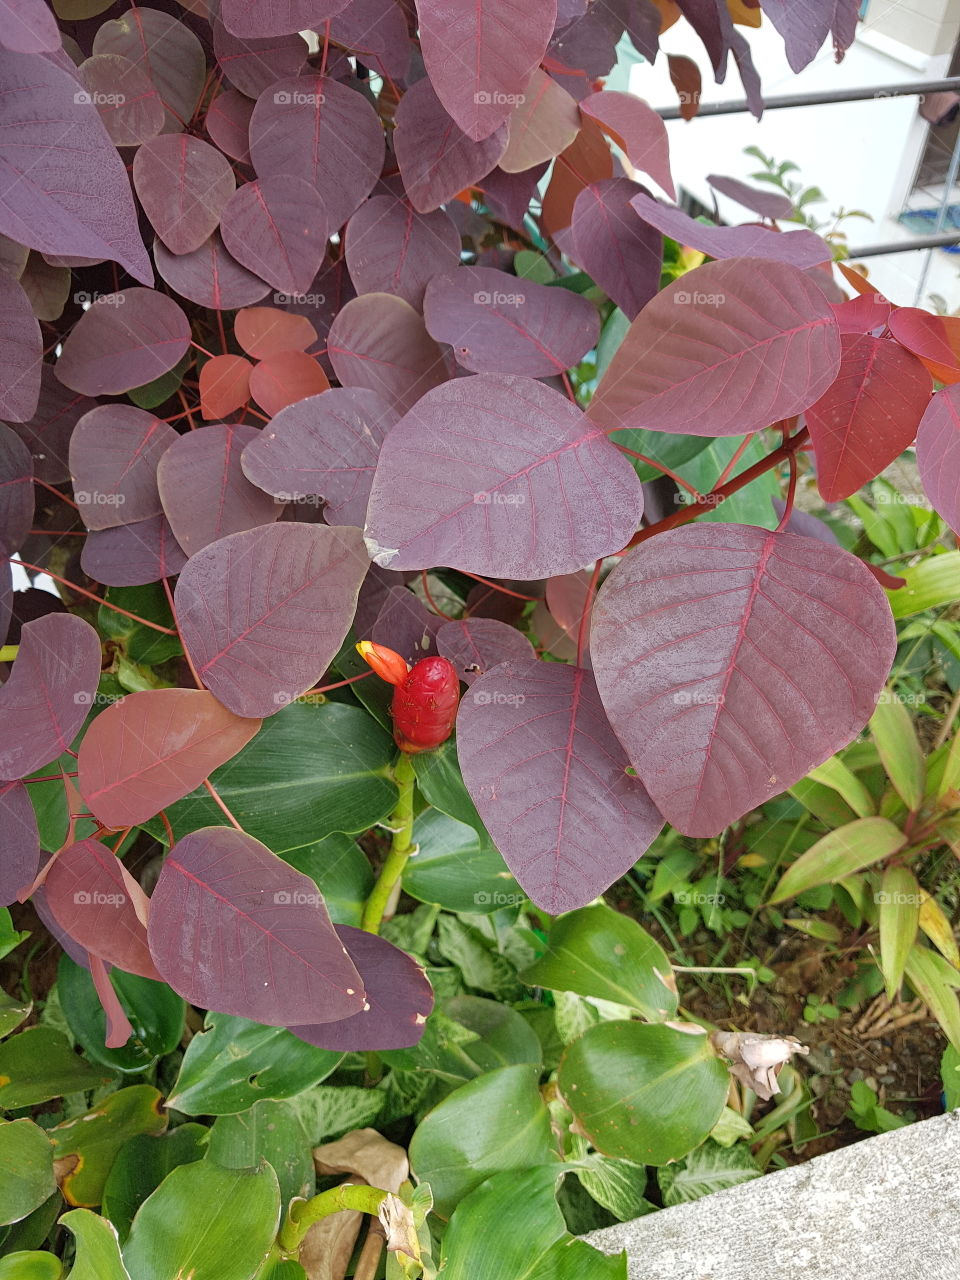 ornamental plants that make our environment attractive.